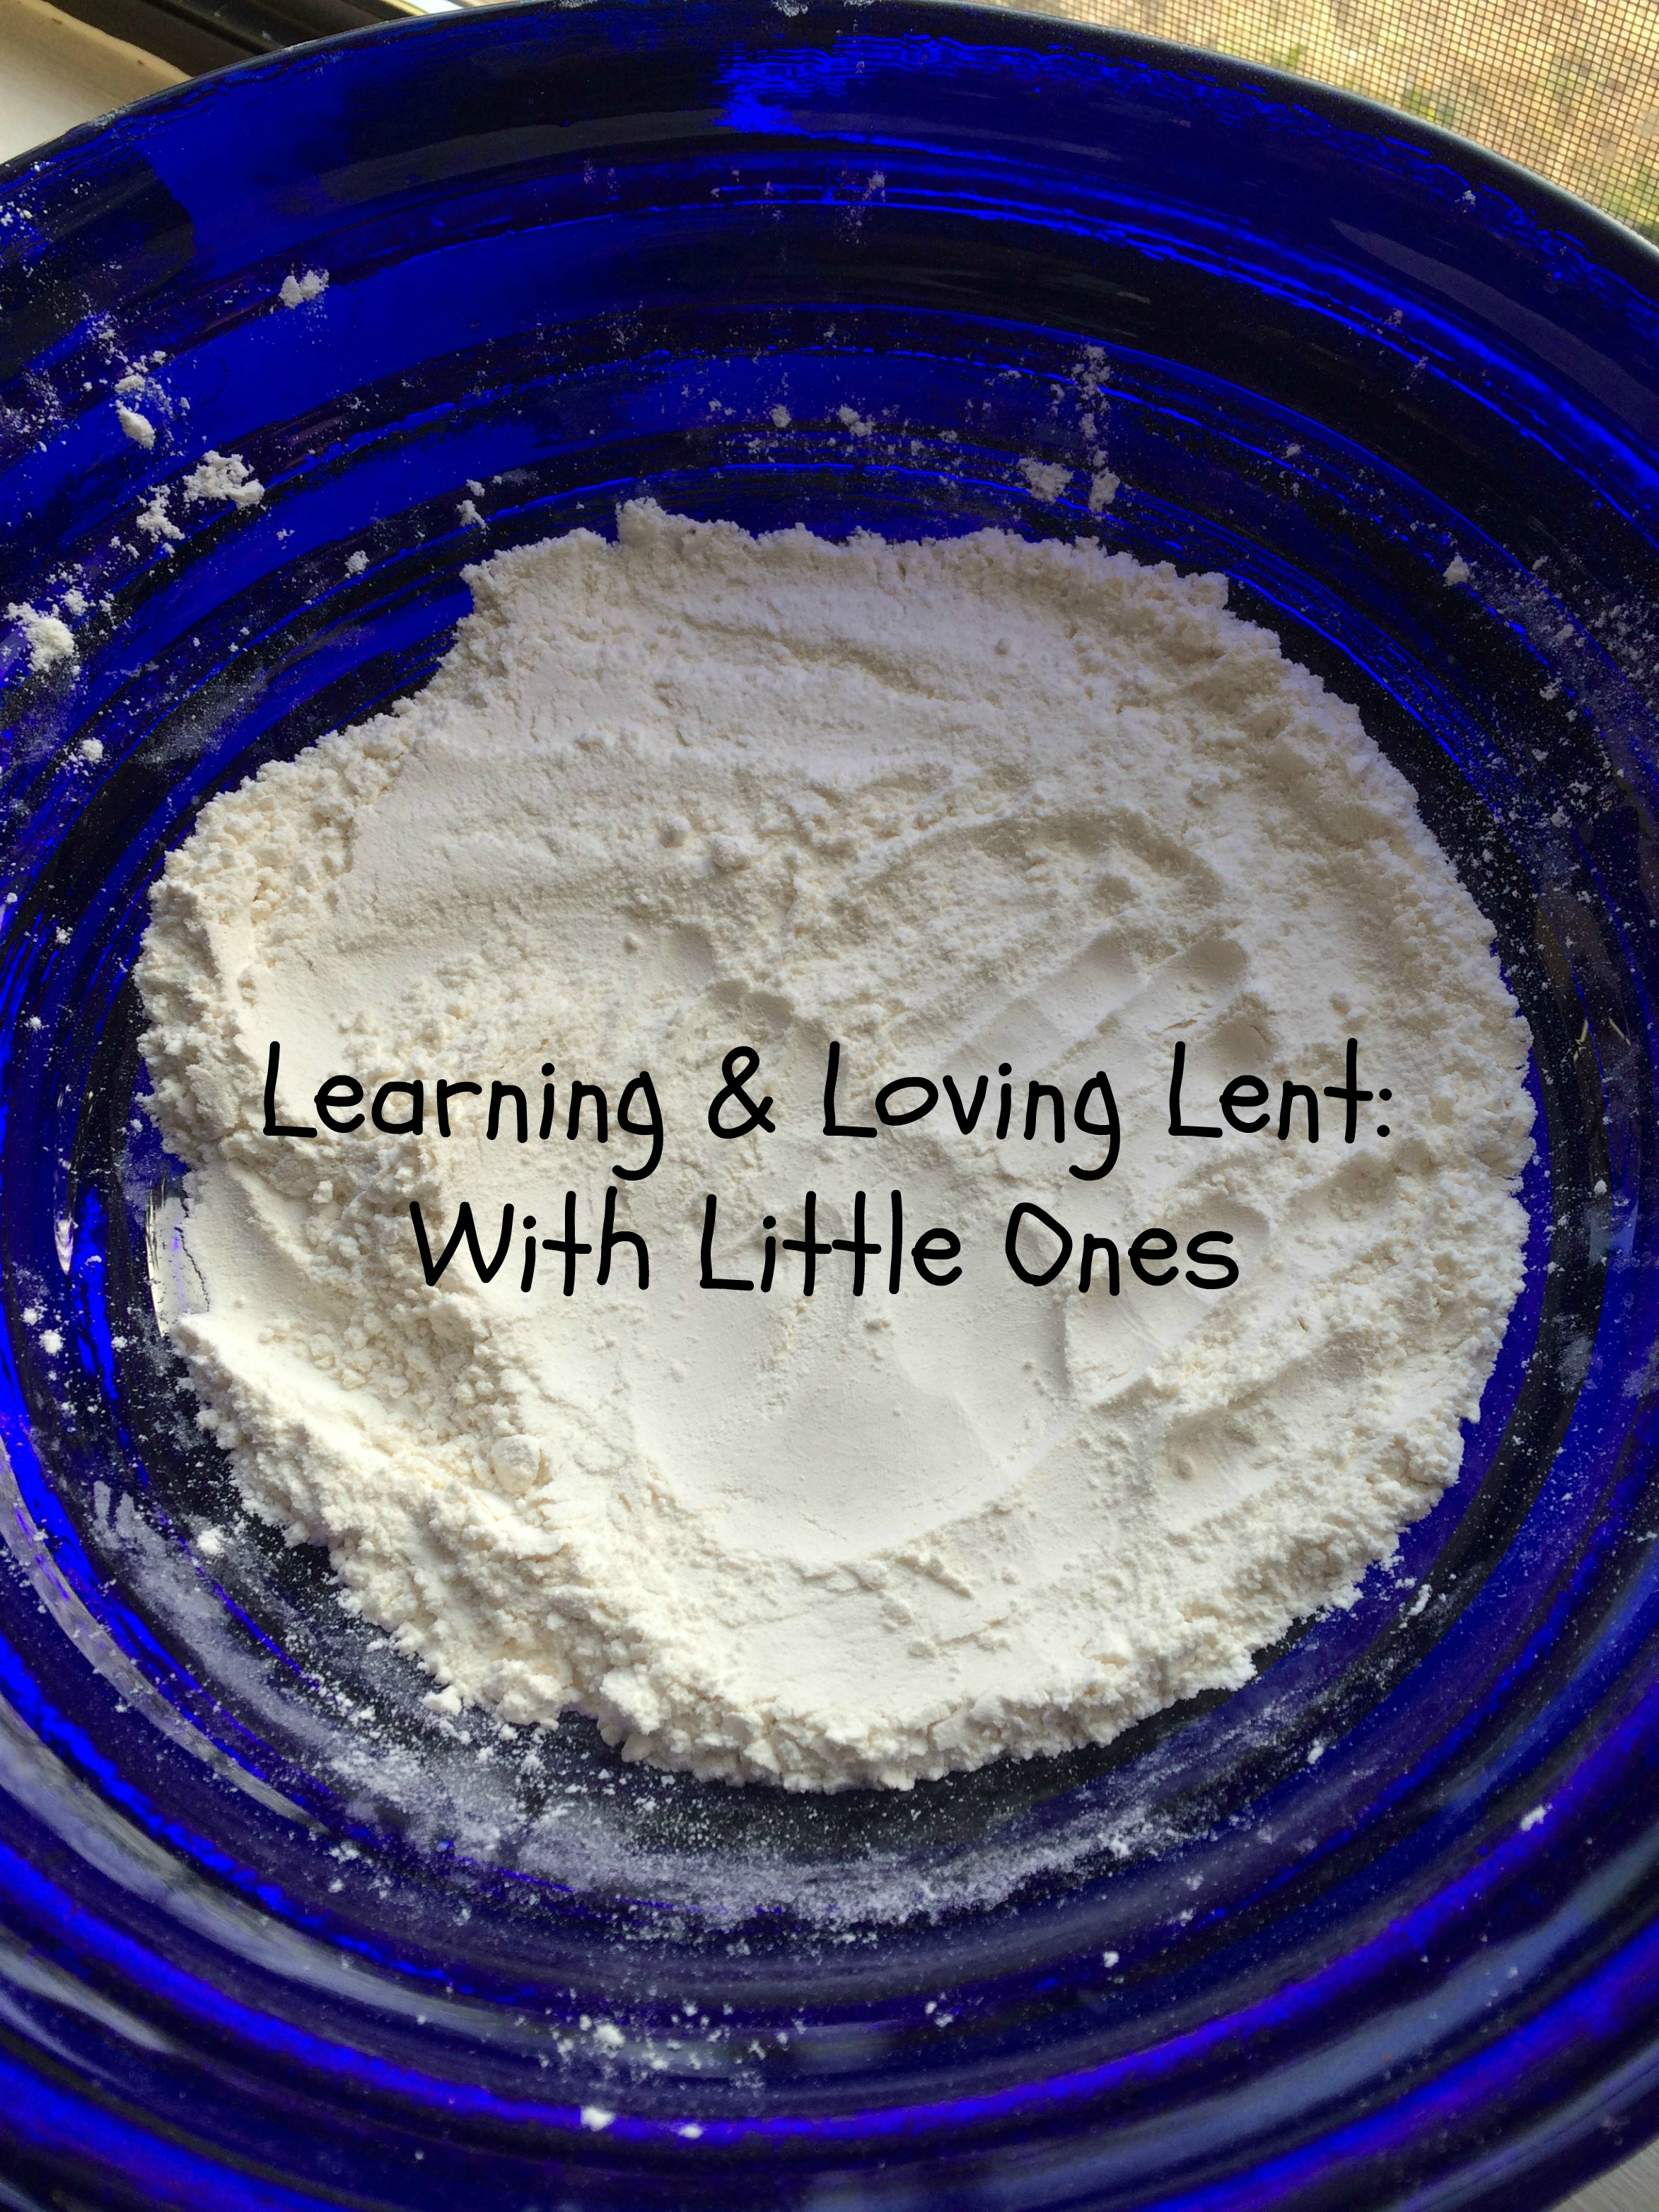 Learning & Loving Lent With Littles